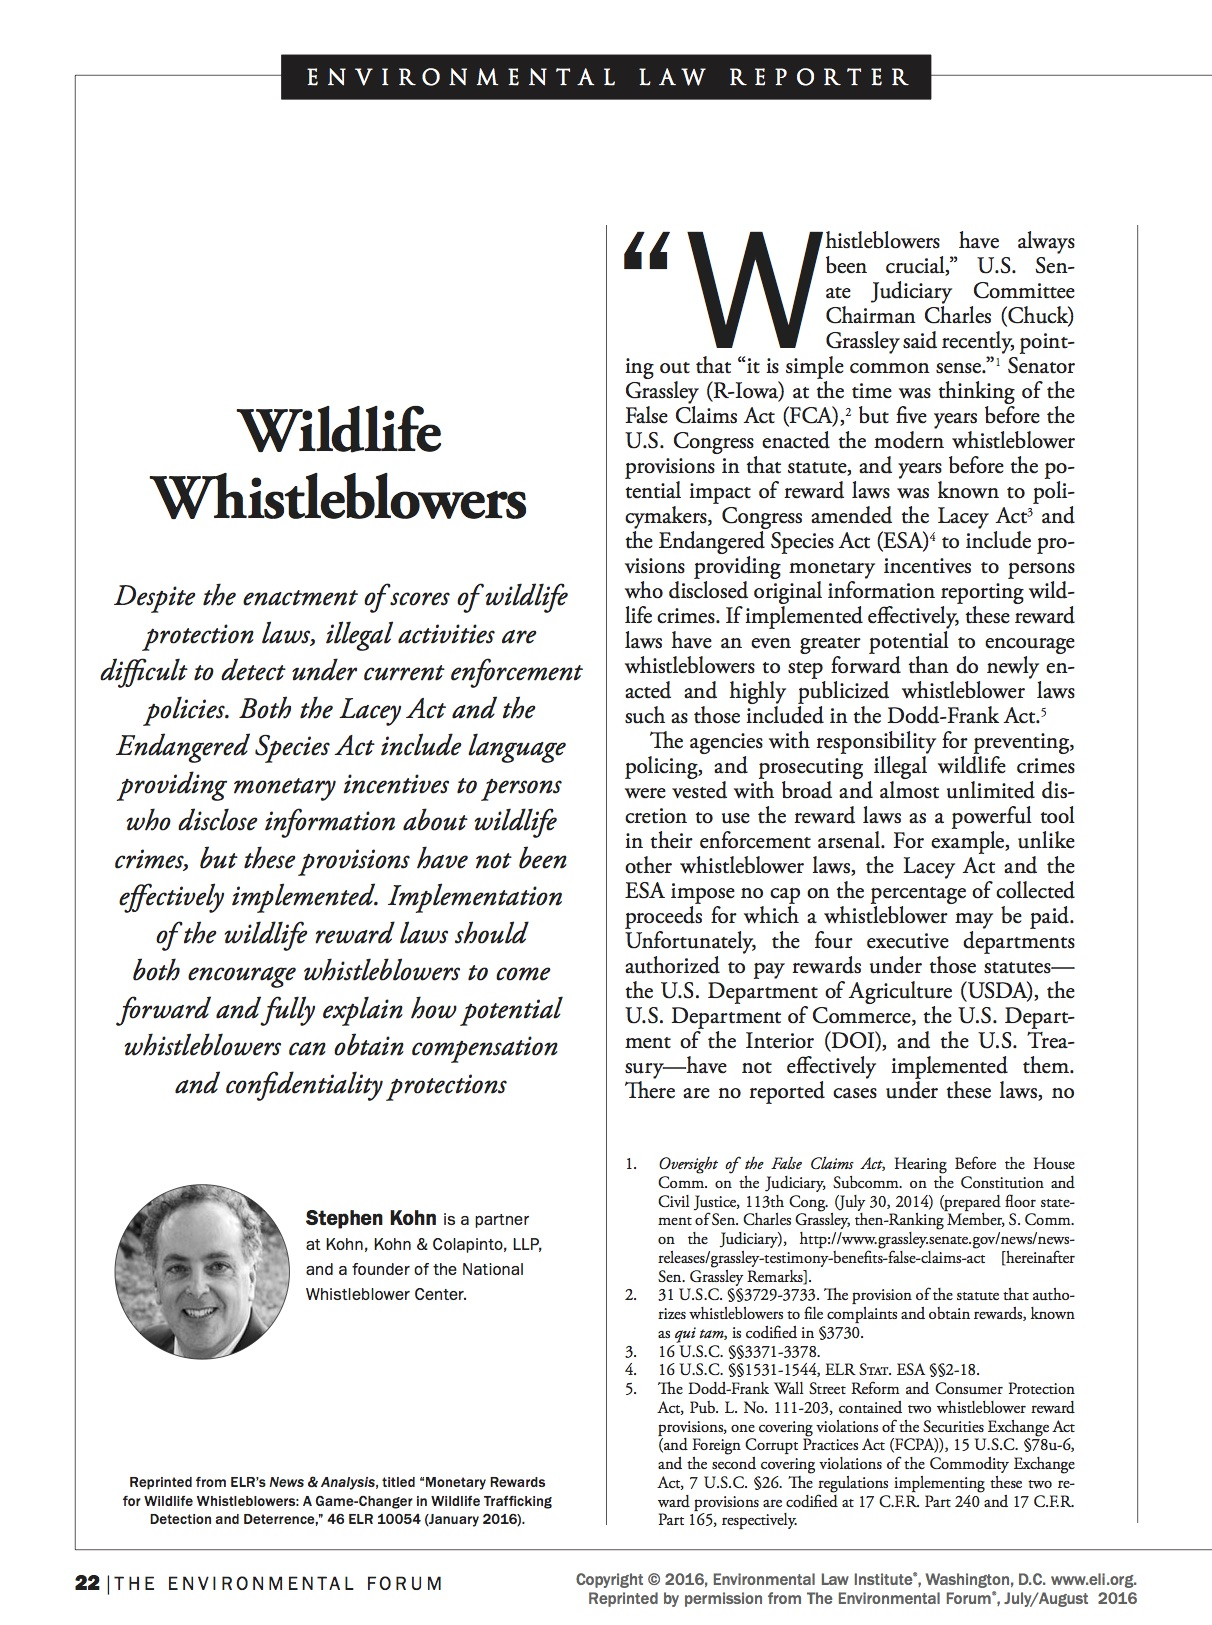 Wildlife Whistleblowers Article